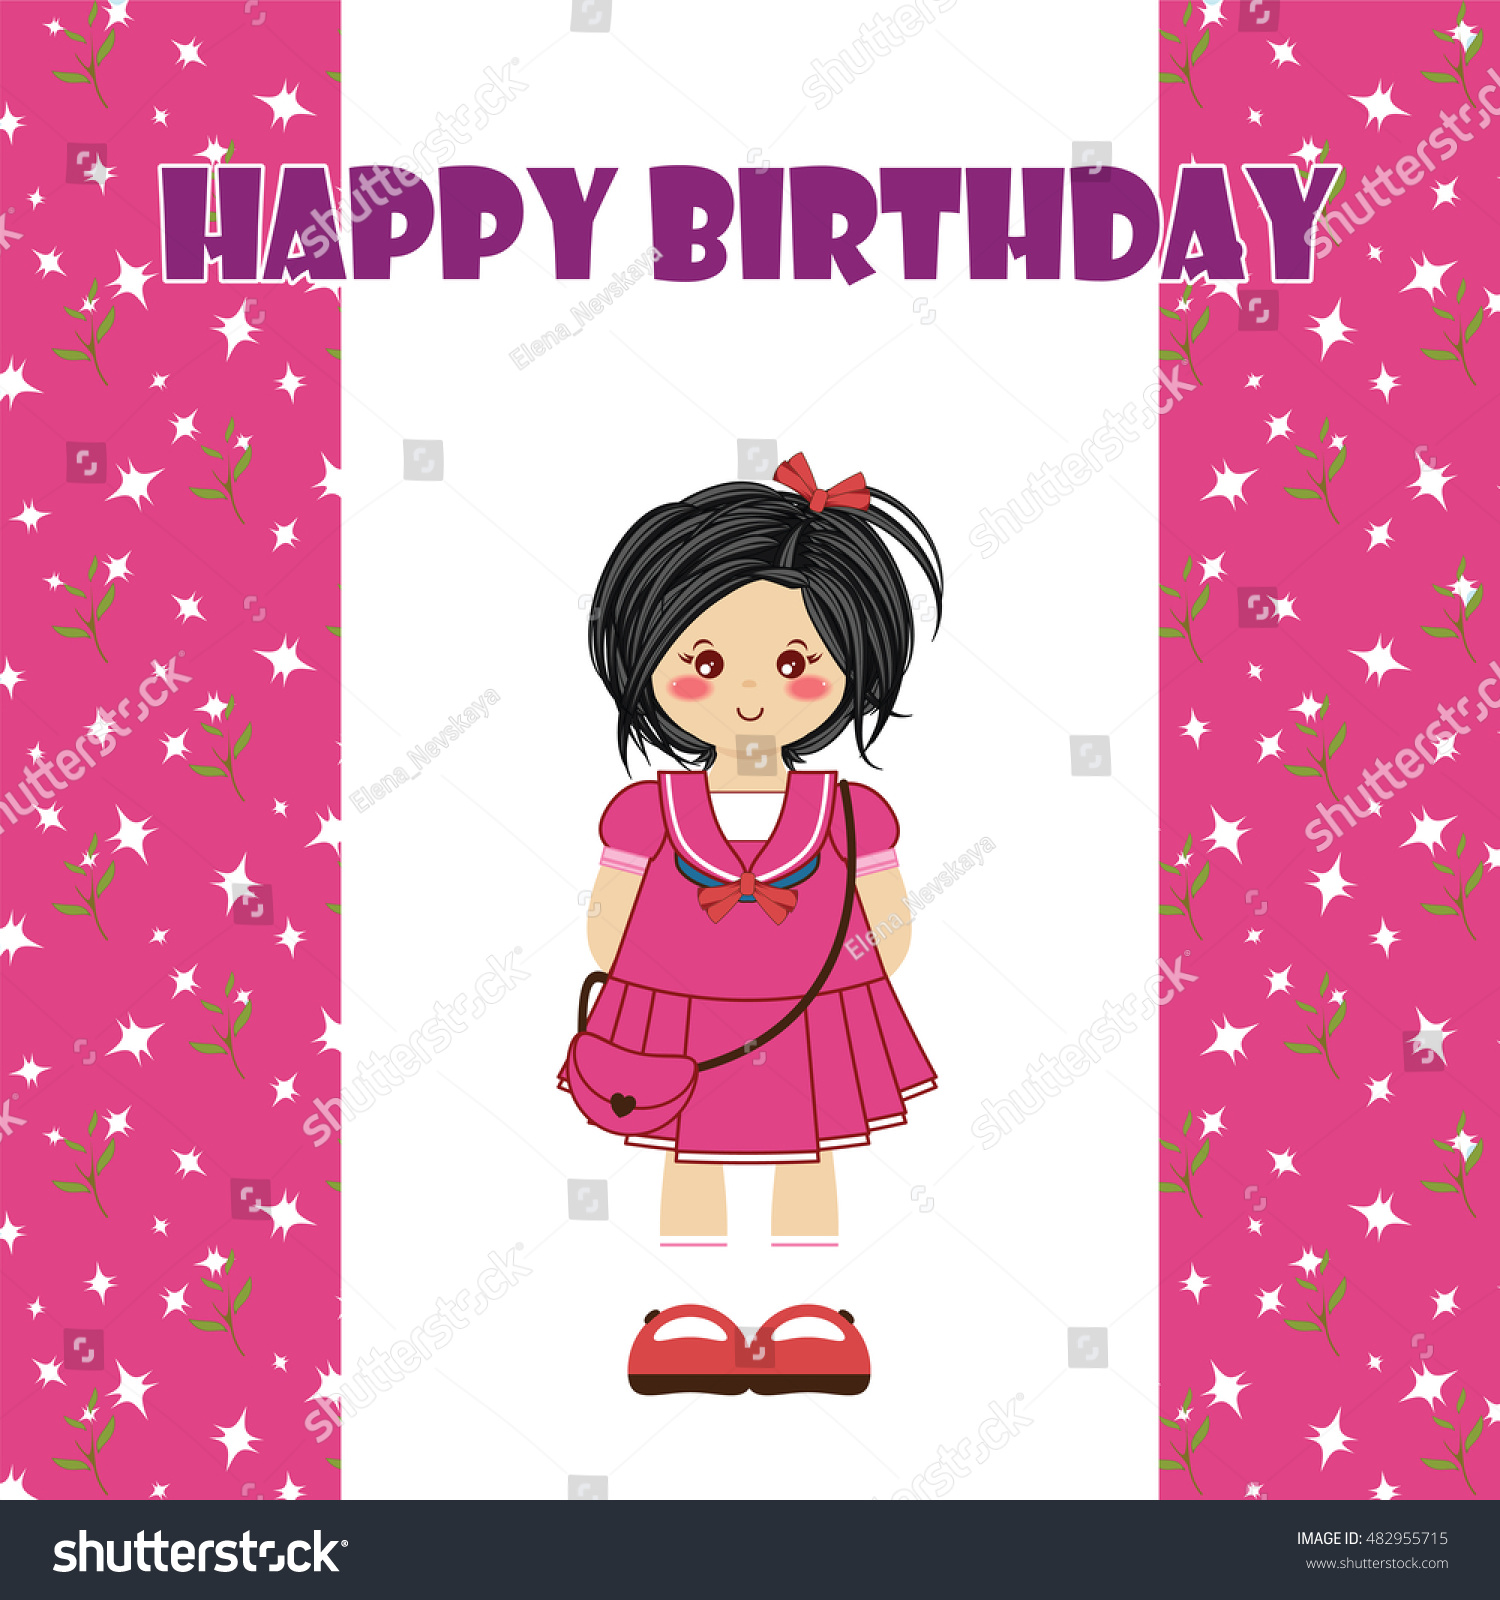 Happy birthday greeting card kawaii little stock vector 482955715 happy birthday greeting card kawaii little girl with black hair tender childish design kristyandbryce Image collections